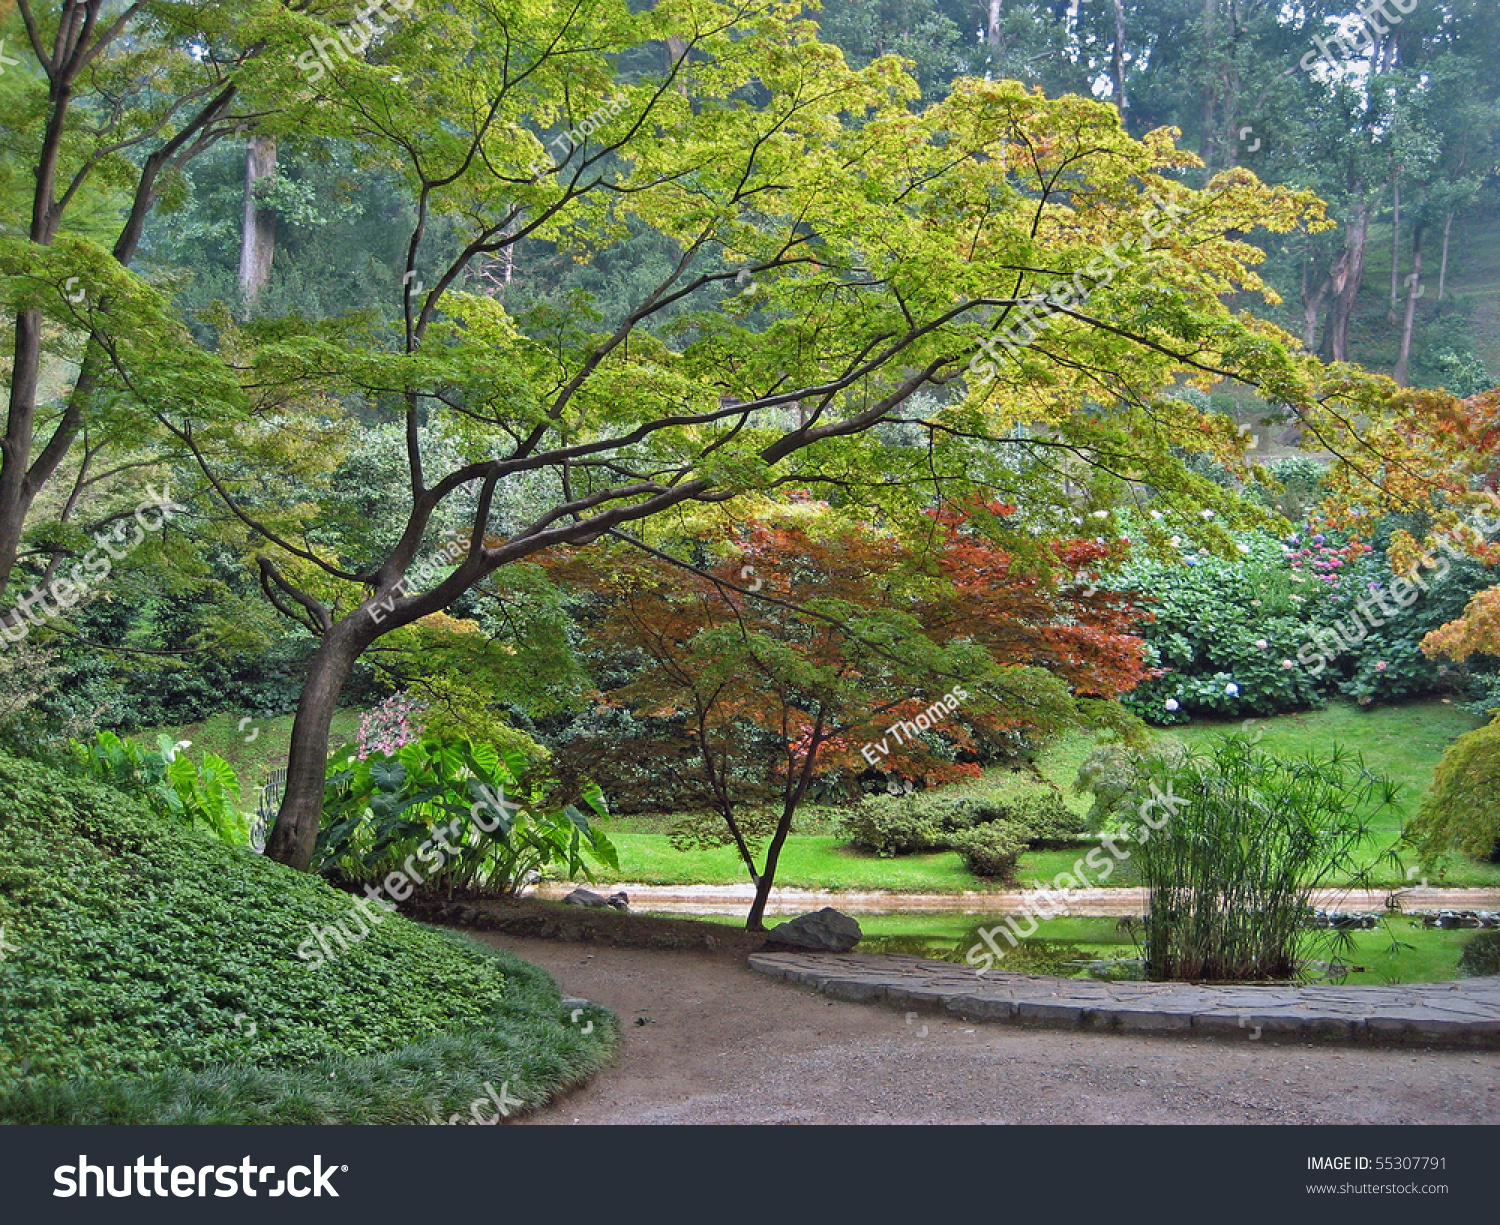 Full HD Nature Wallpaper with Japanese Maple Tree - HD ... |Beautiful Japanese Trees